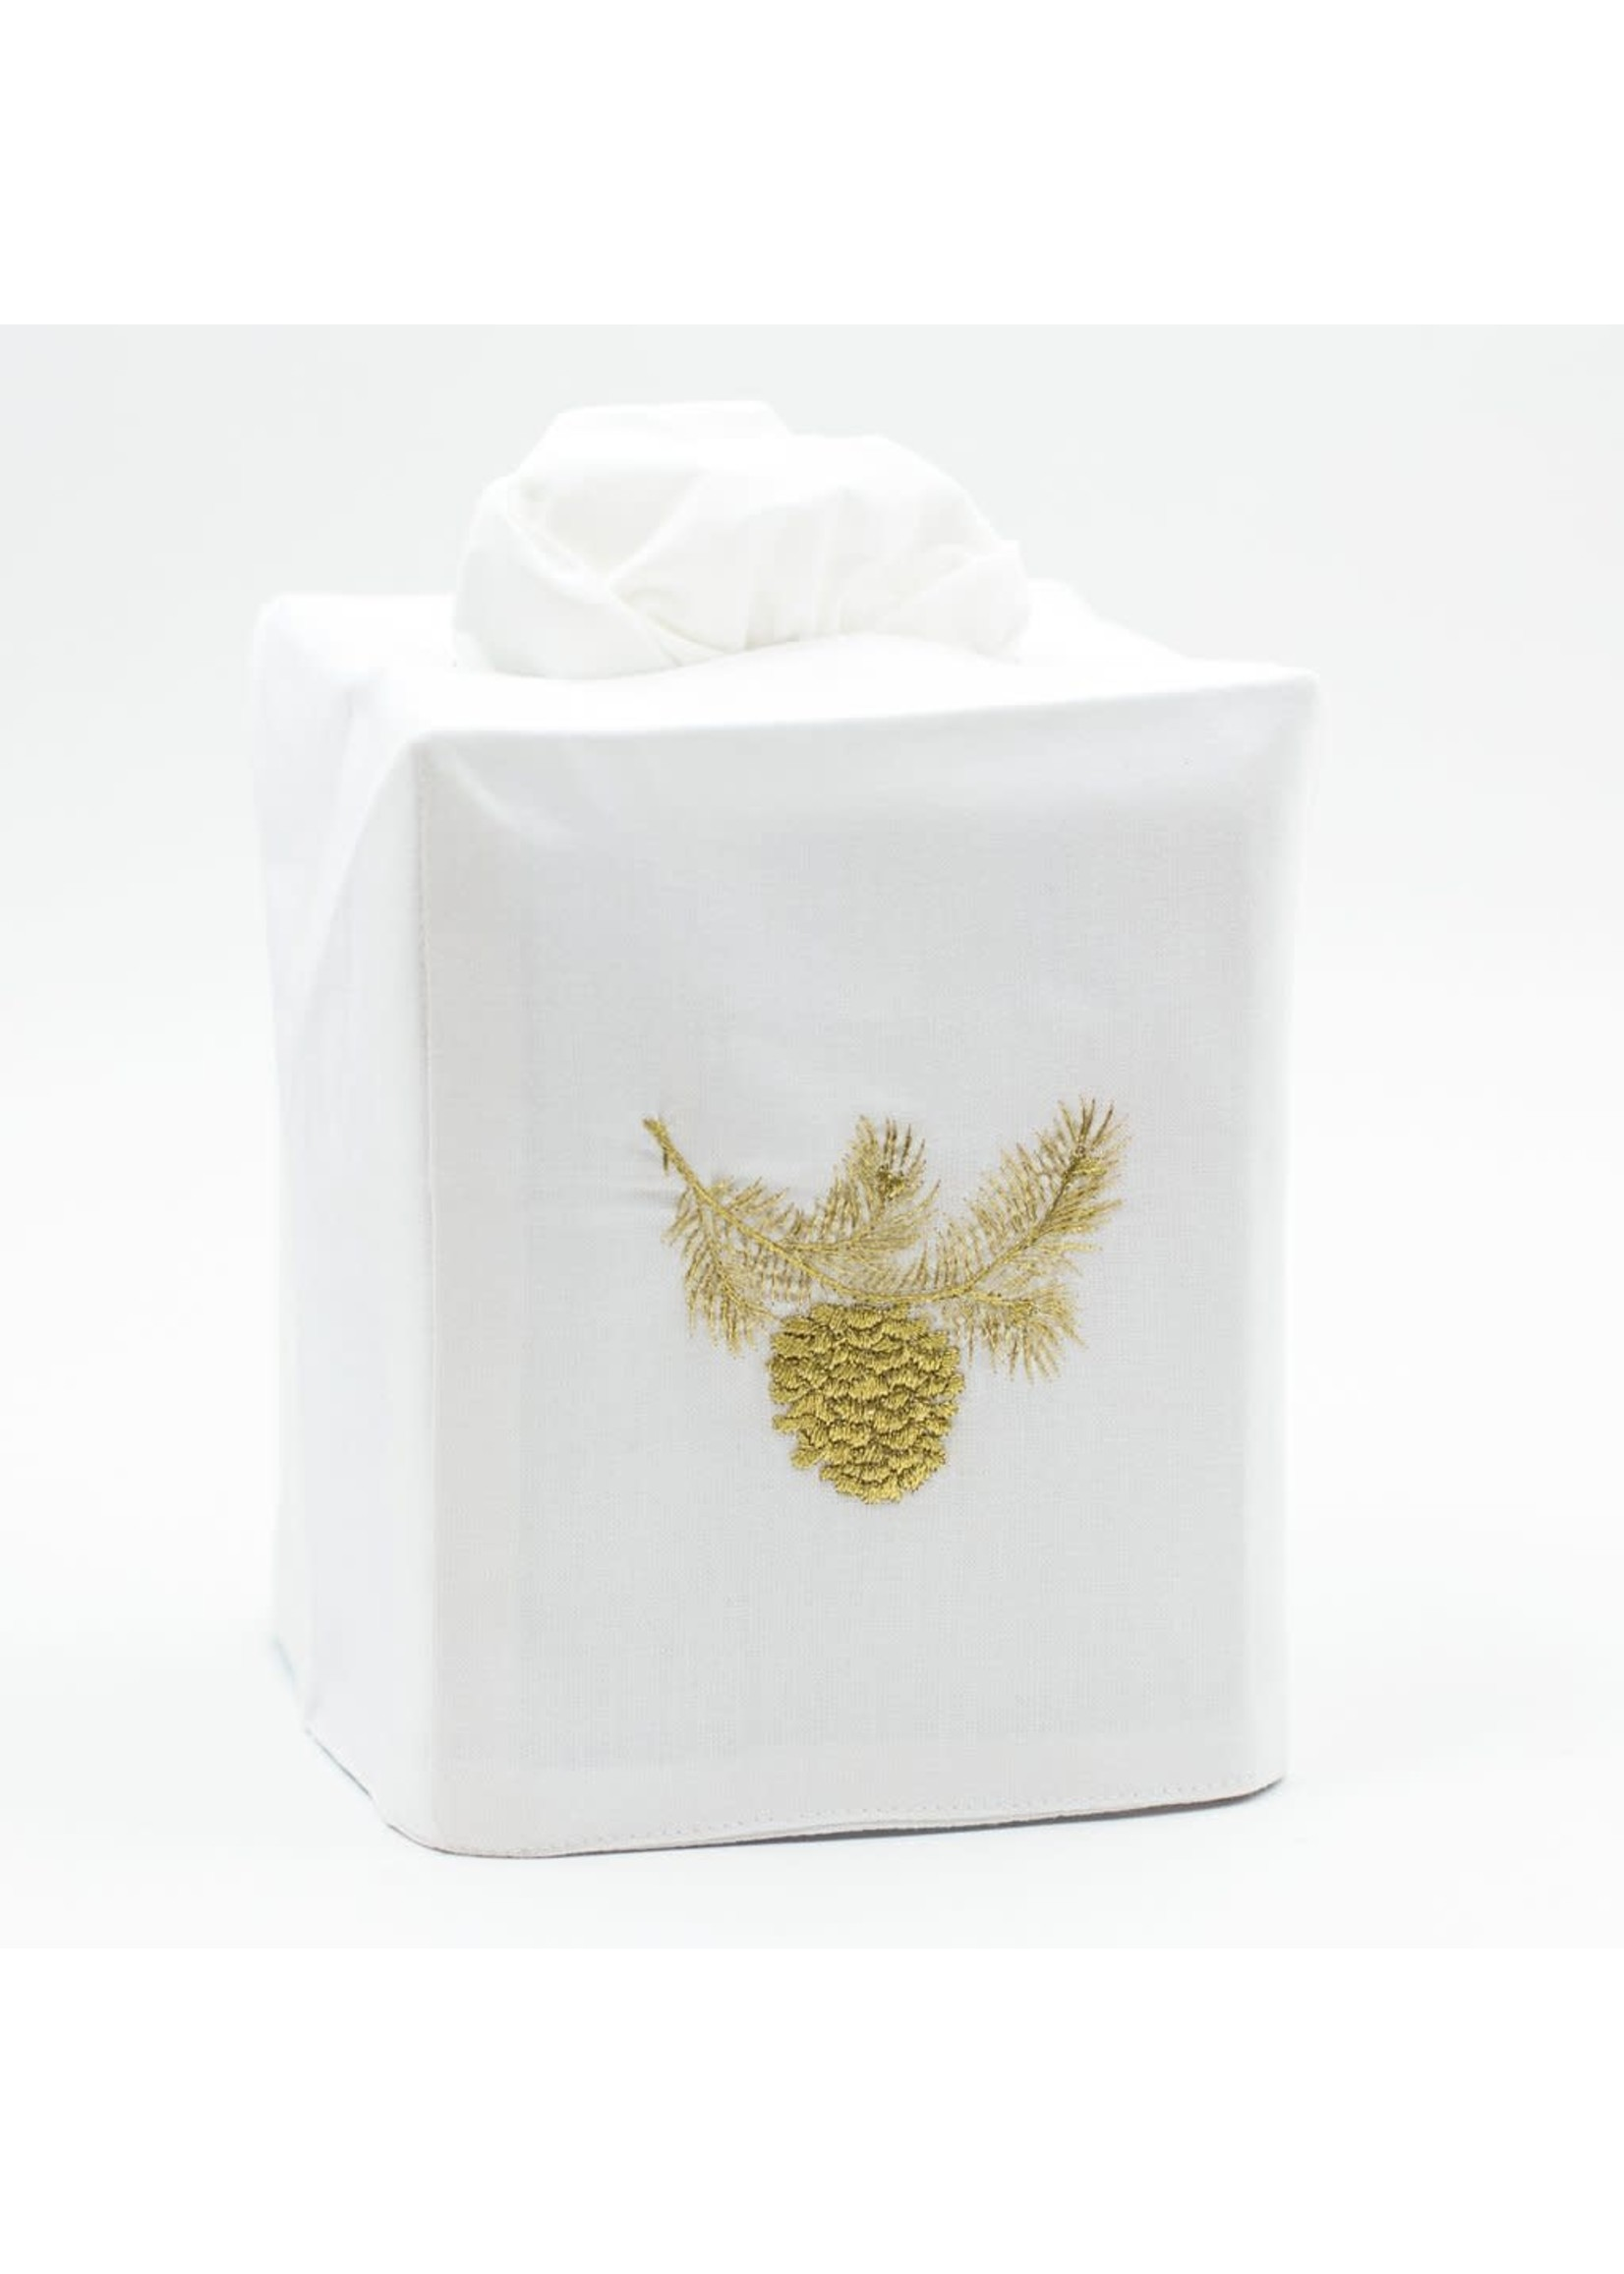 Henry Handwork Tissue Box Cover - Pinecone Gold